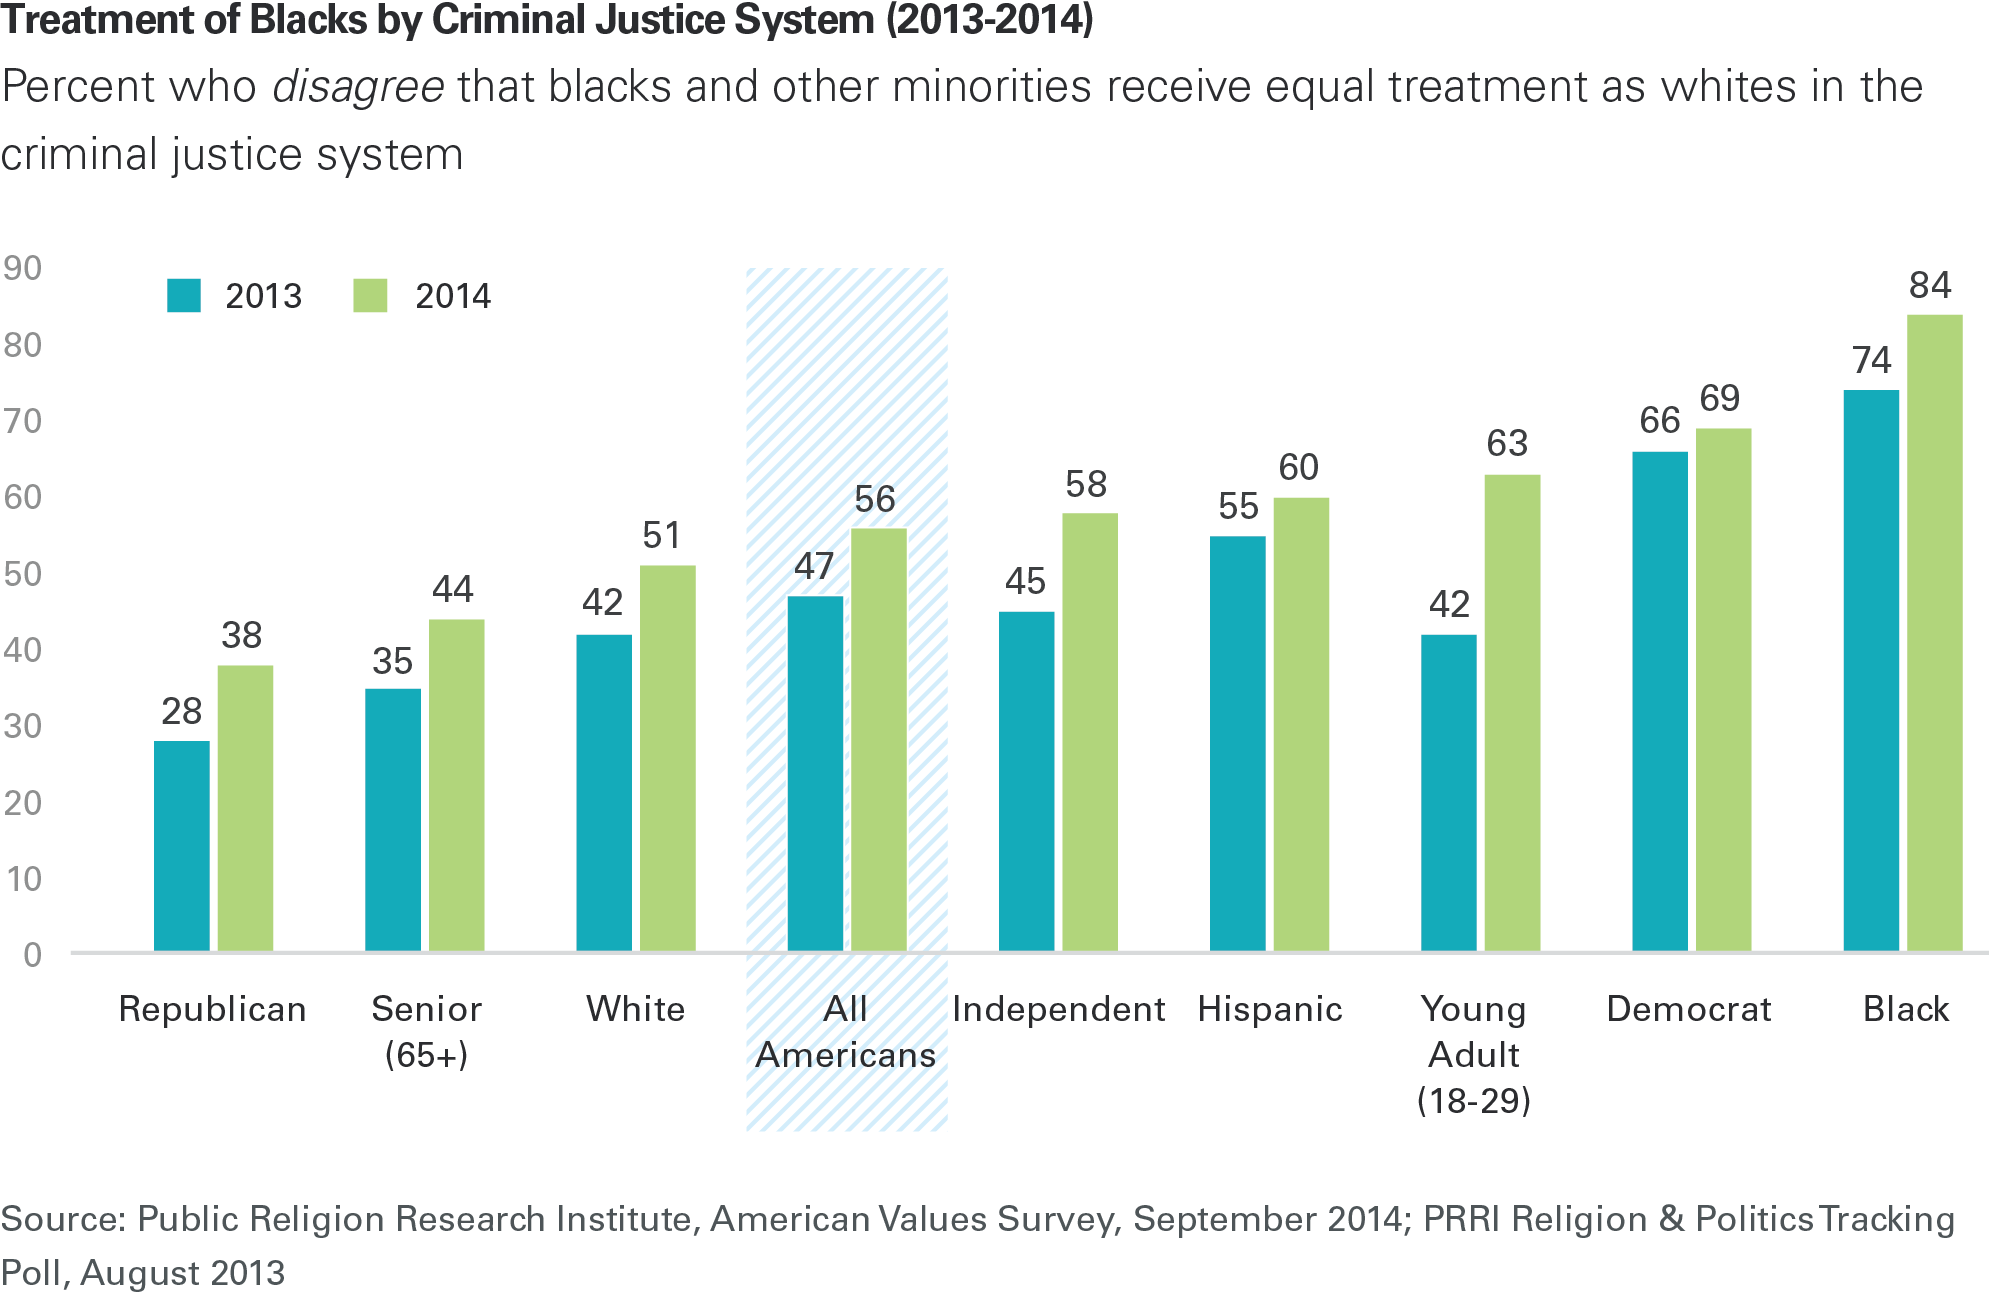 racial conflict in the criminal justice system Disproportionality in the criminal justice system is attributable to unconscious   address a species of discrimination that racial minorities frequently experience.